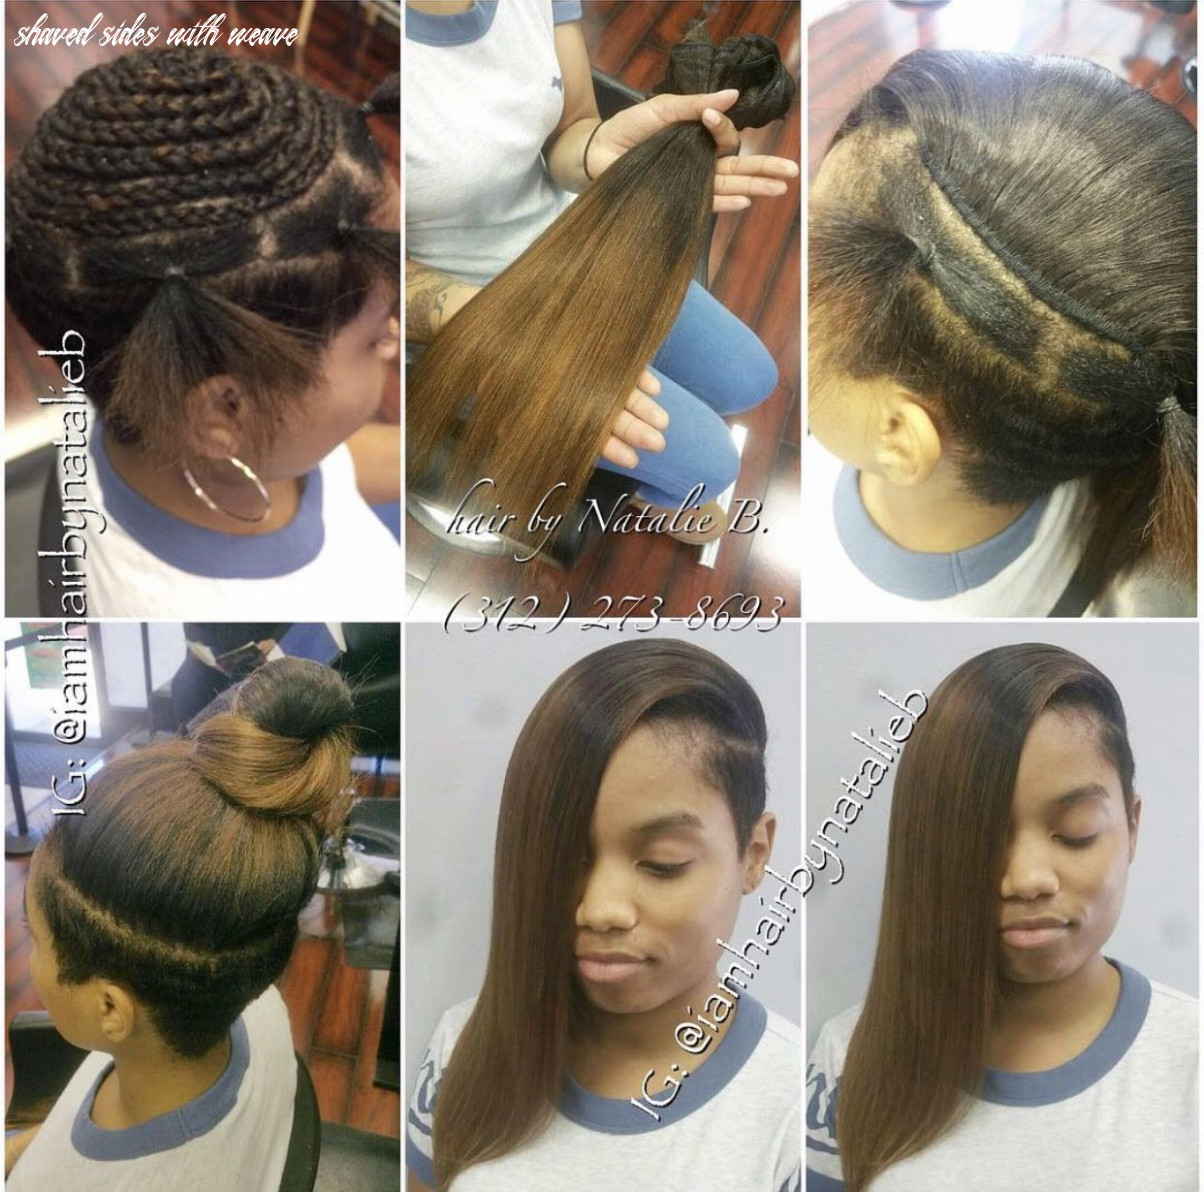 Check out this traditional sew in hair weave that i did for my